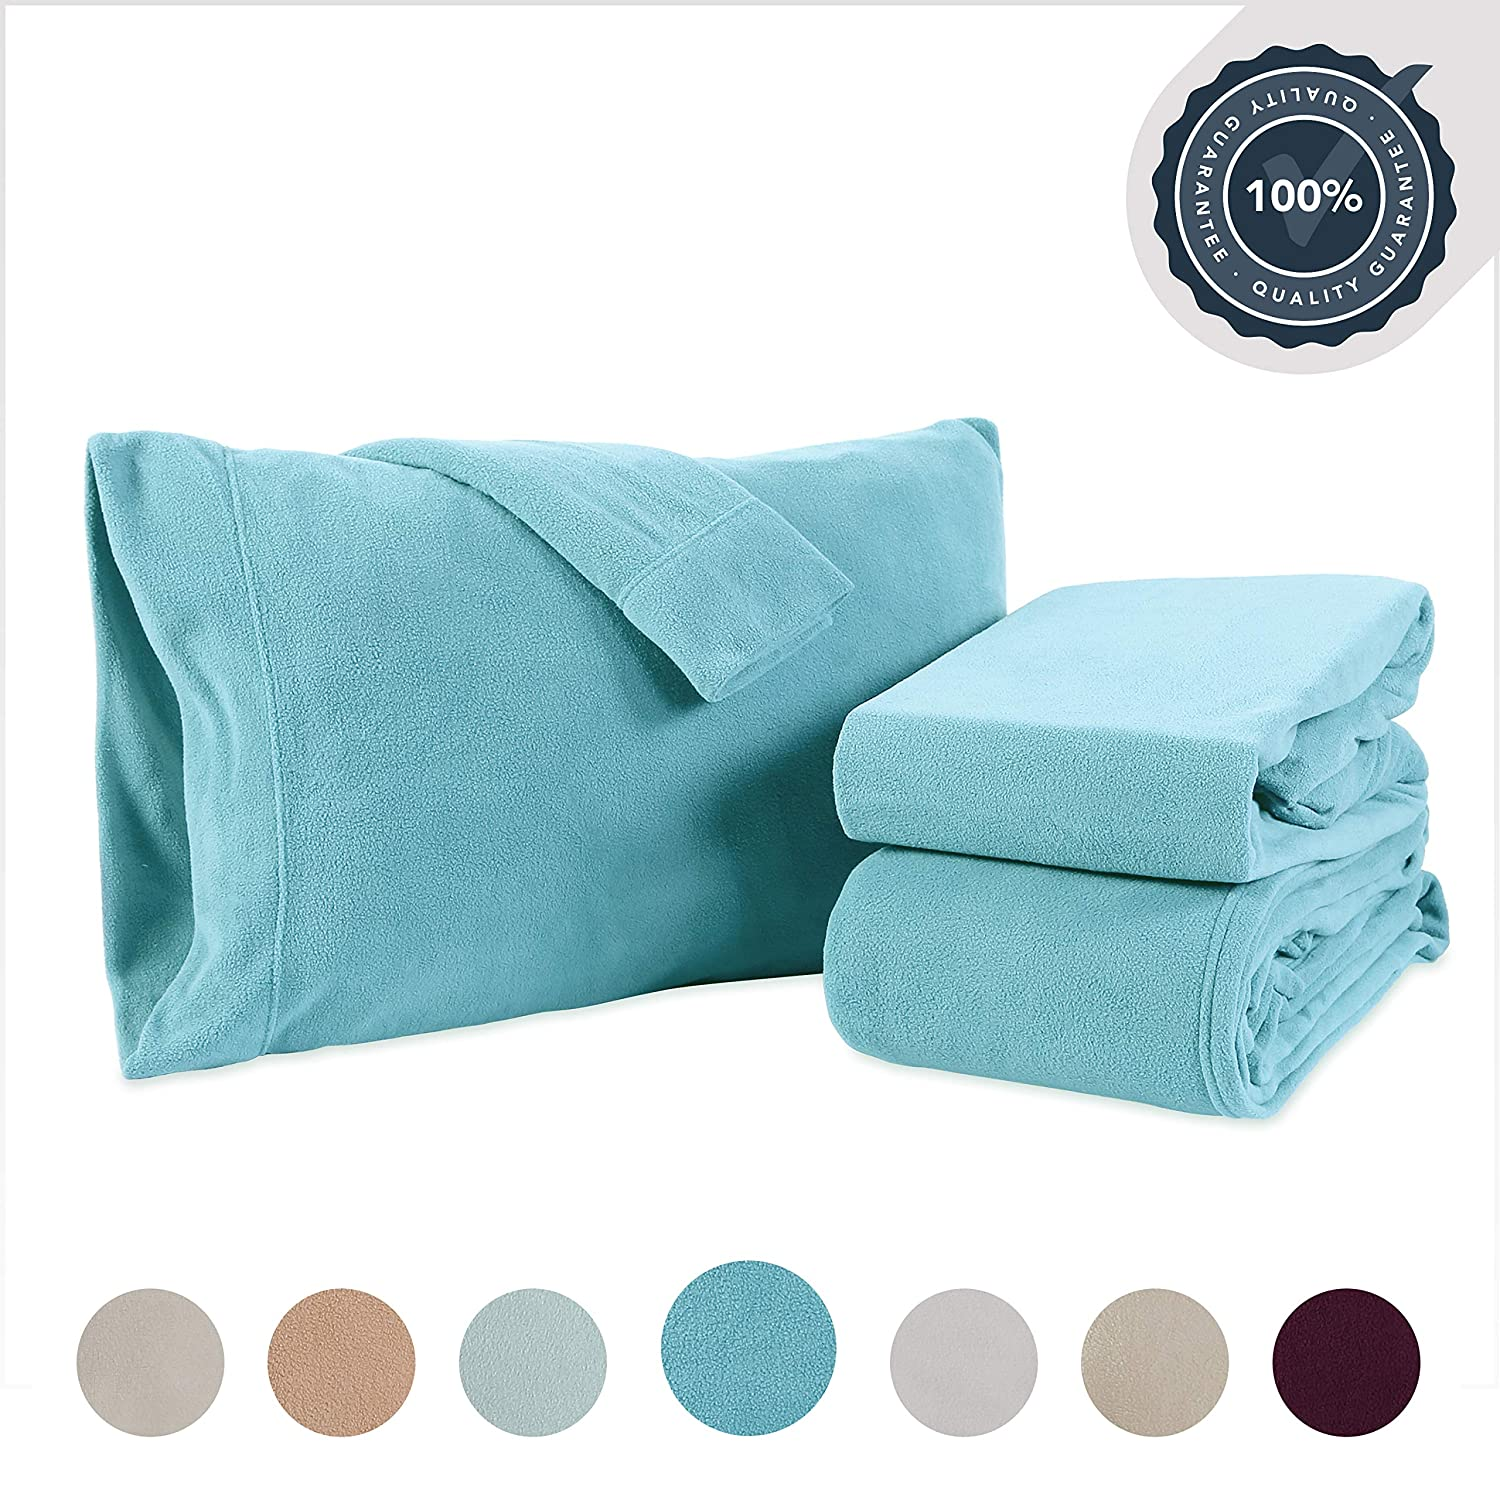 Berkshire Blanket Microfleece Extra Soft Cozy Sheet Set